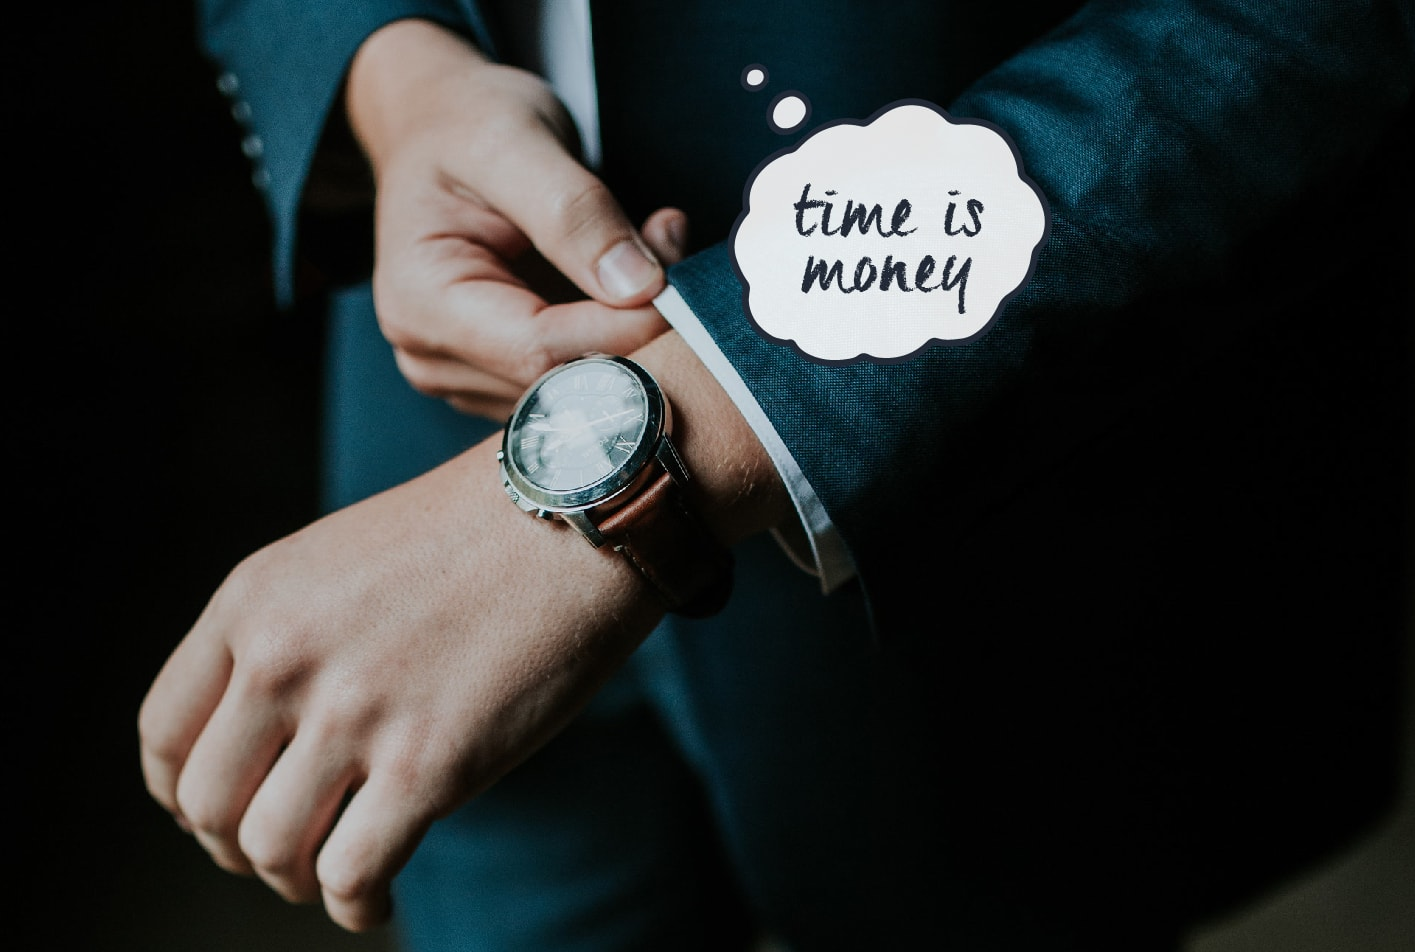 6 sales hacks to maximize selling time